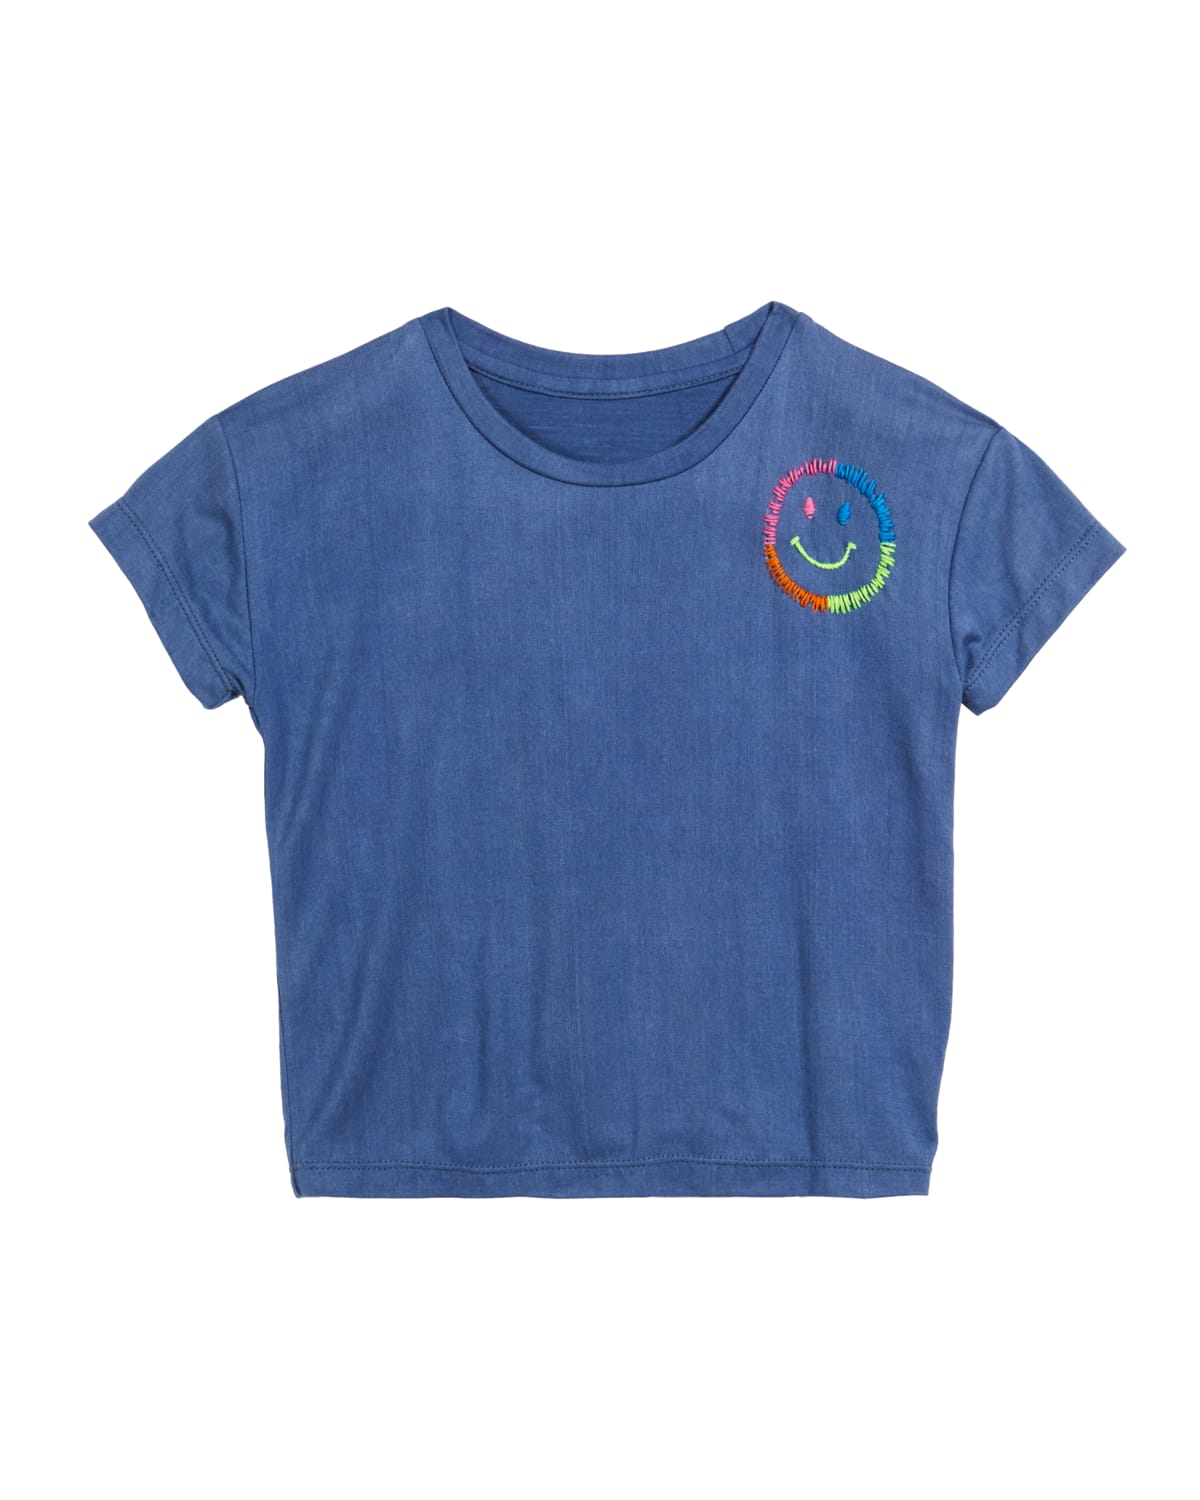 Girl's Embroidered Smiley Face T-Shirt